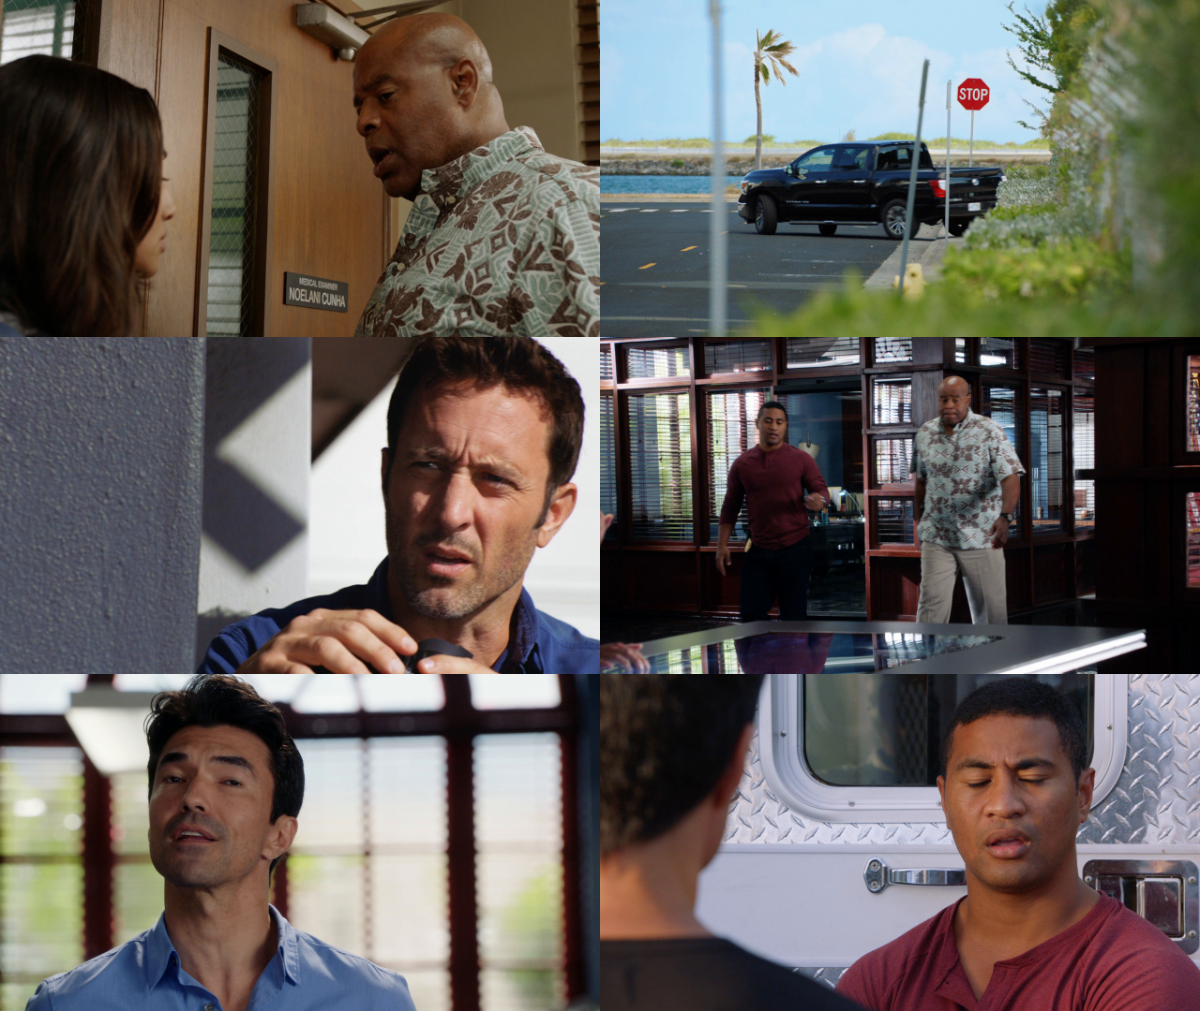 Hawaii Five-0 2010 S10E03 iNTERNAL 720p WEB H264-AMRAP